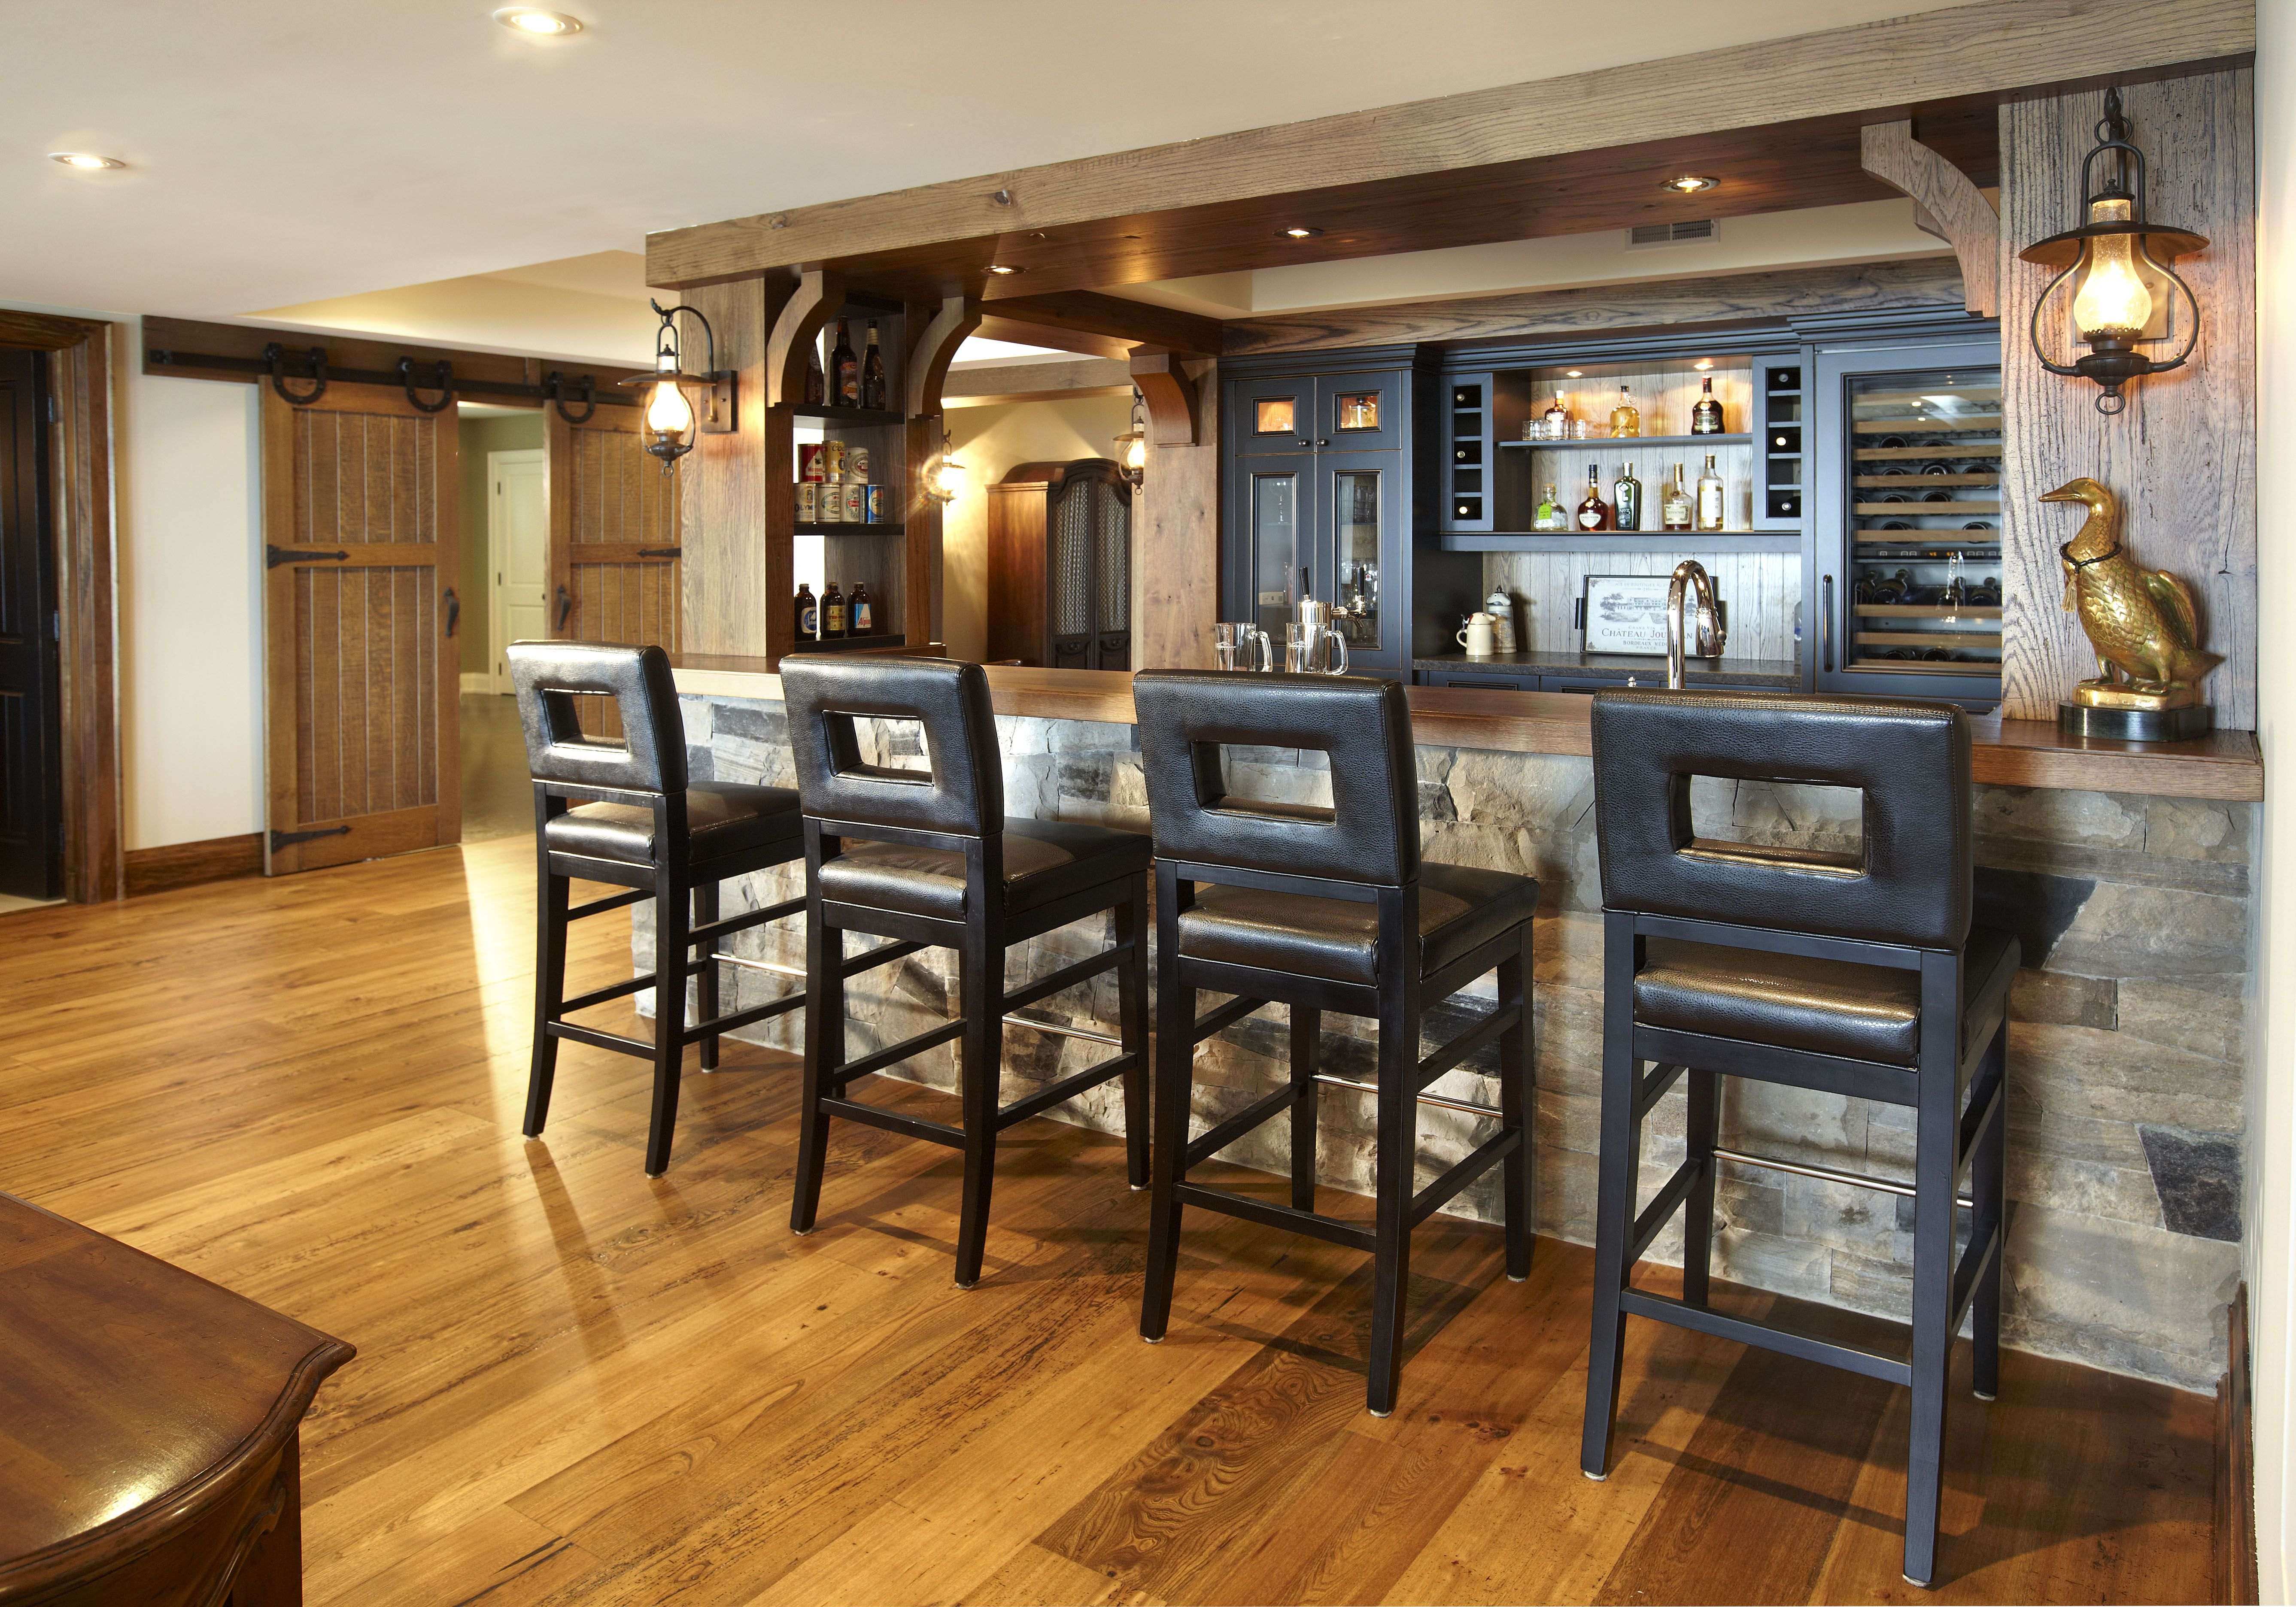 Rustic Style Bar A Rustic Style Bar By